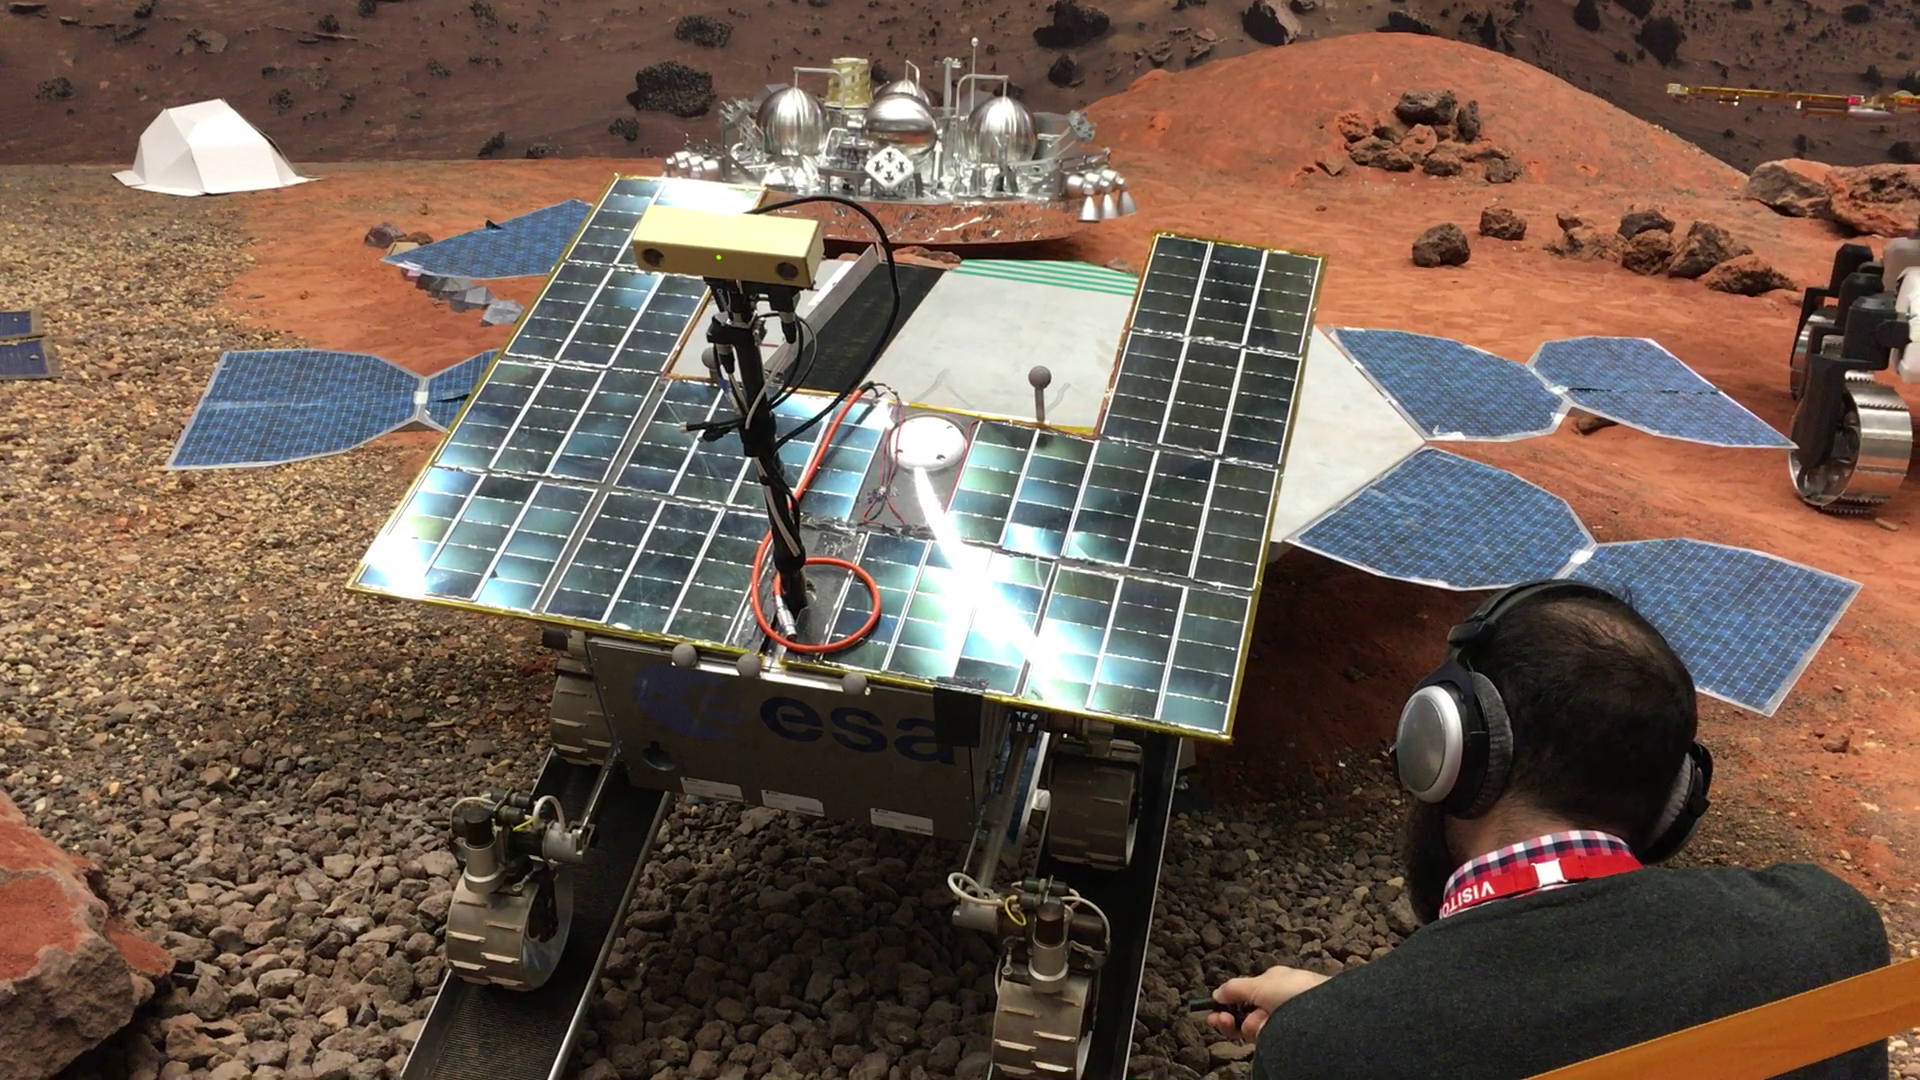 Sounds from the ExoMars rover